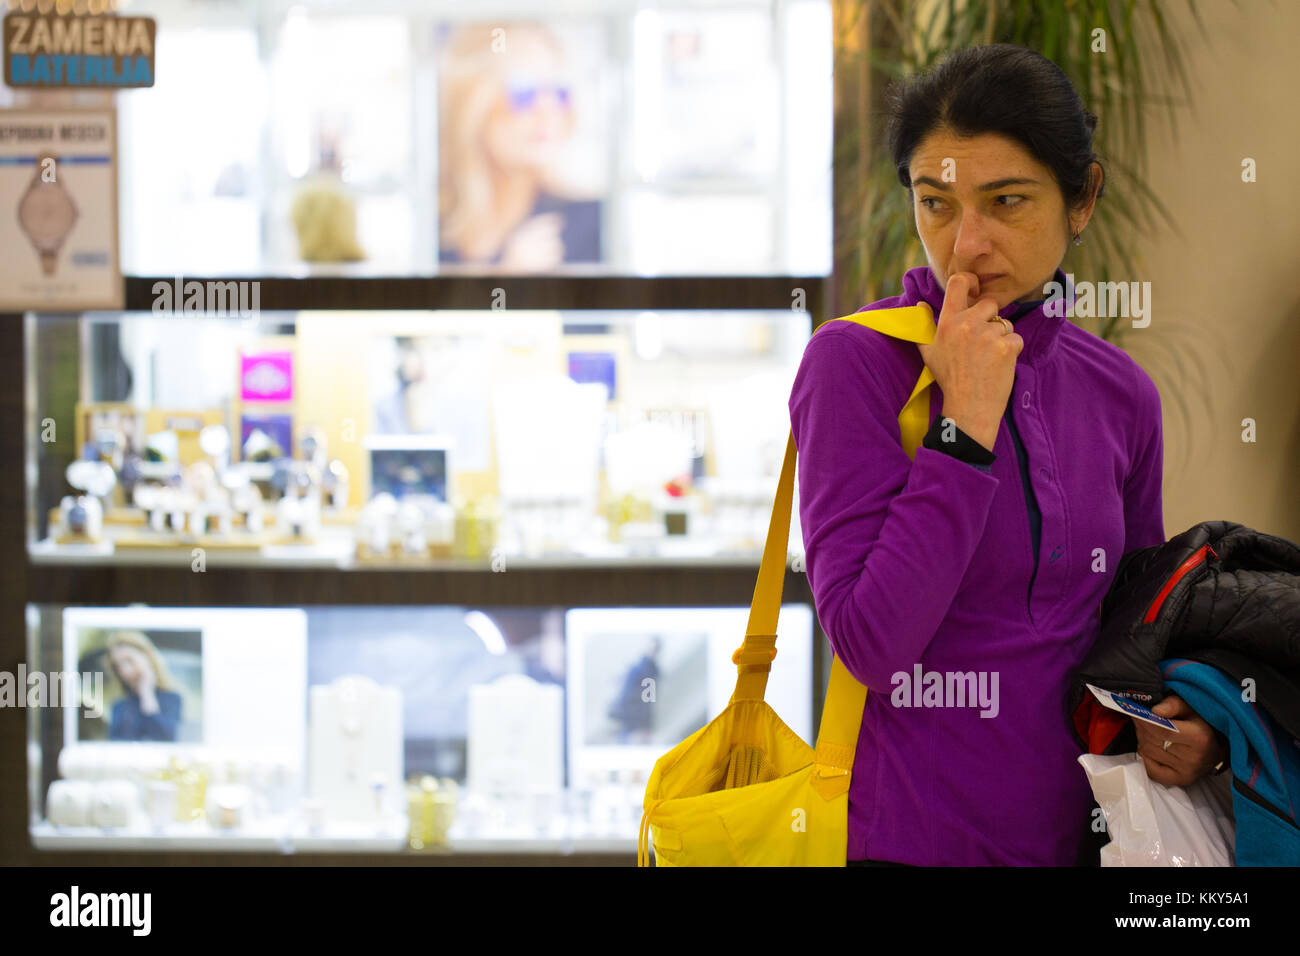 Woman tired of shopping during Christmas time in shopping mall in Belgrade Serbia - Stock Image